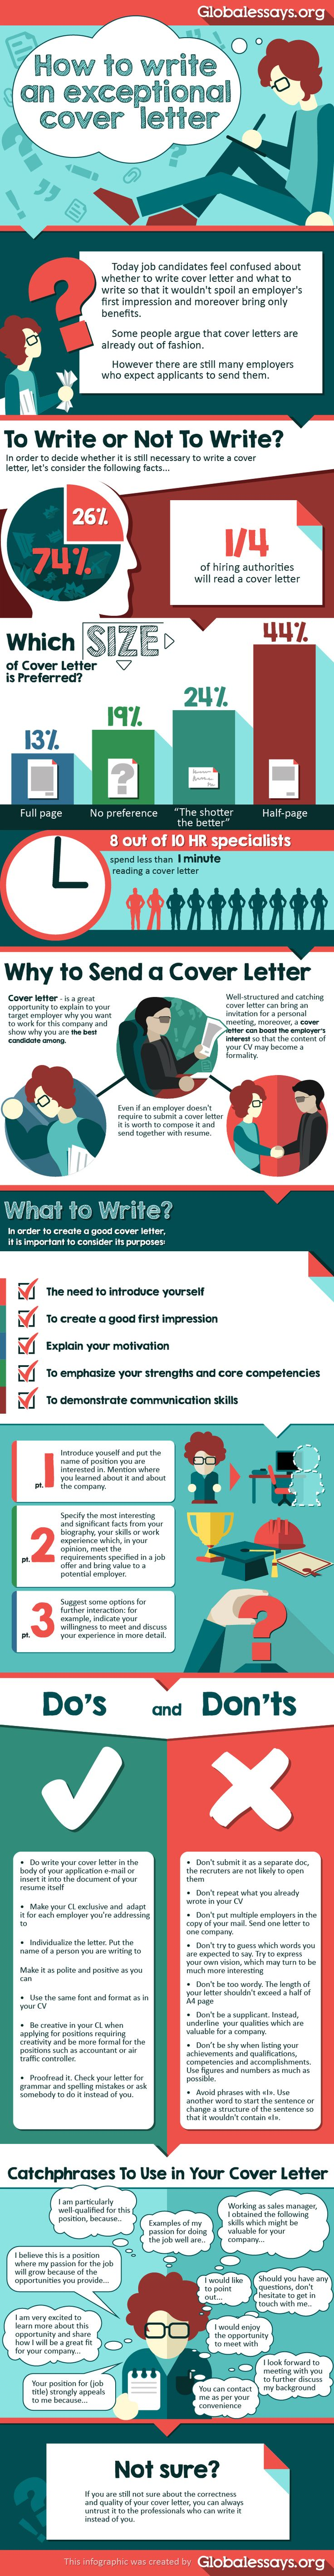 best ideas about resume resume writing resume how to write an exceptional cover letter